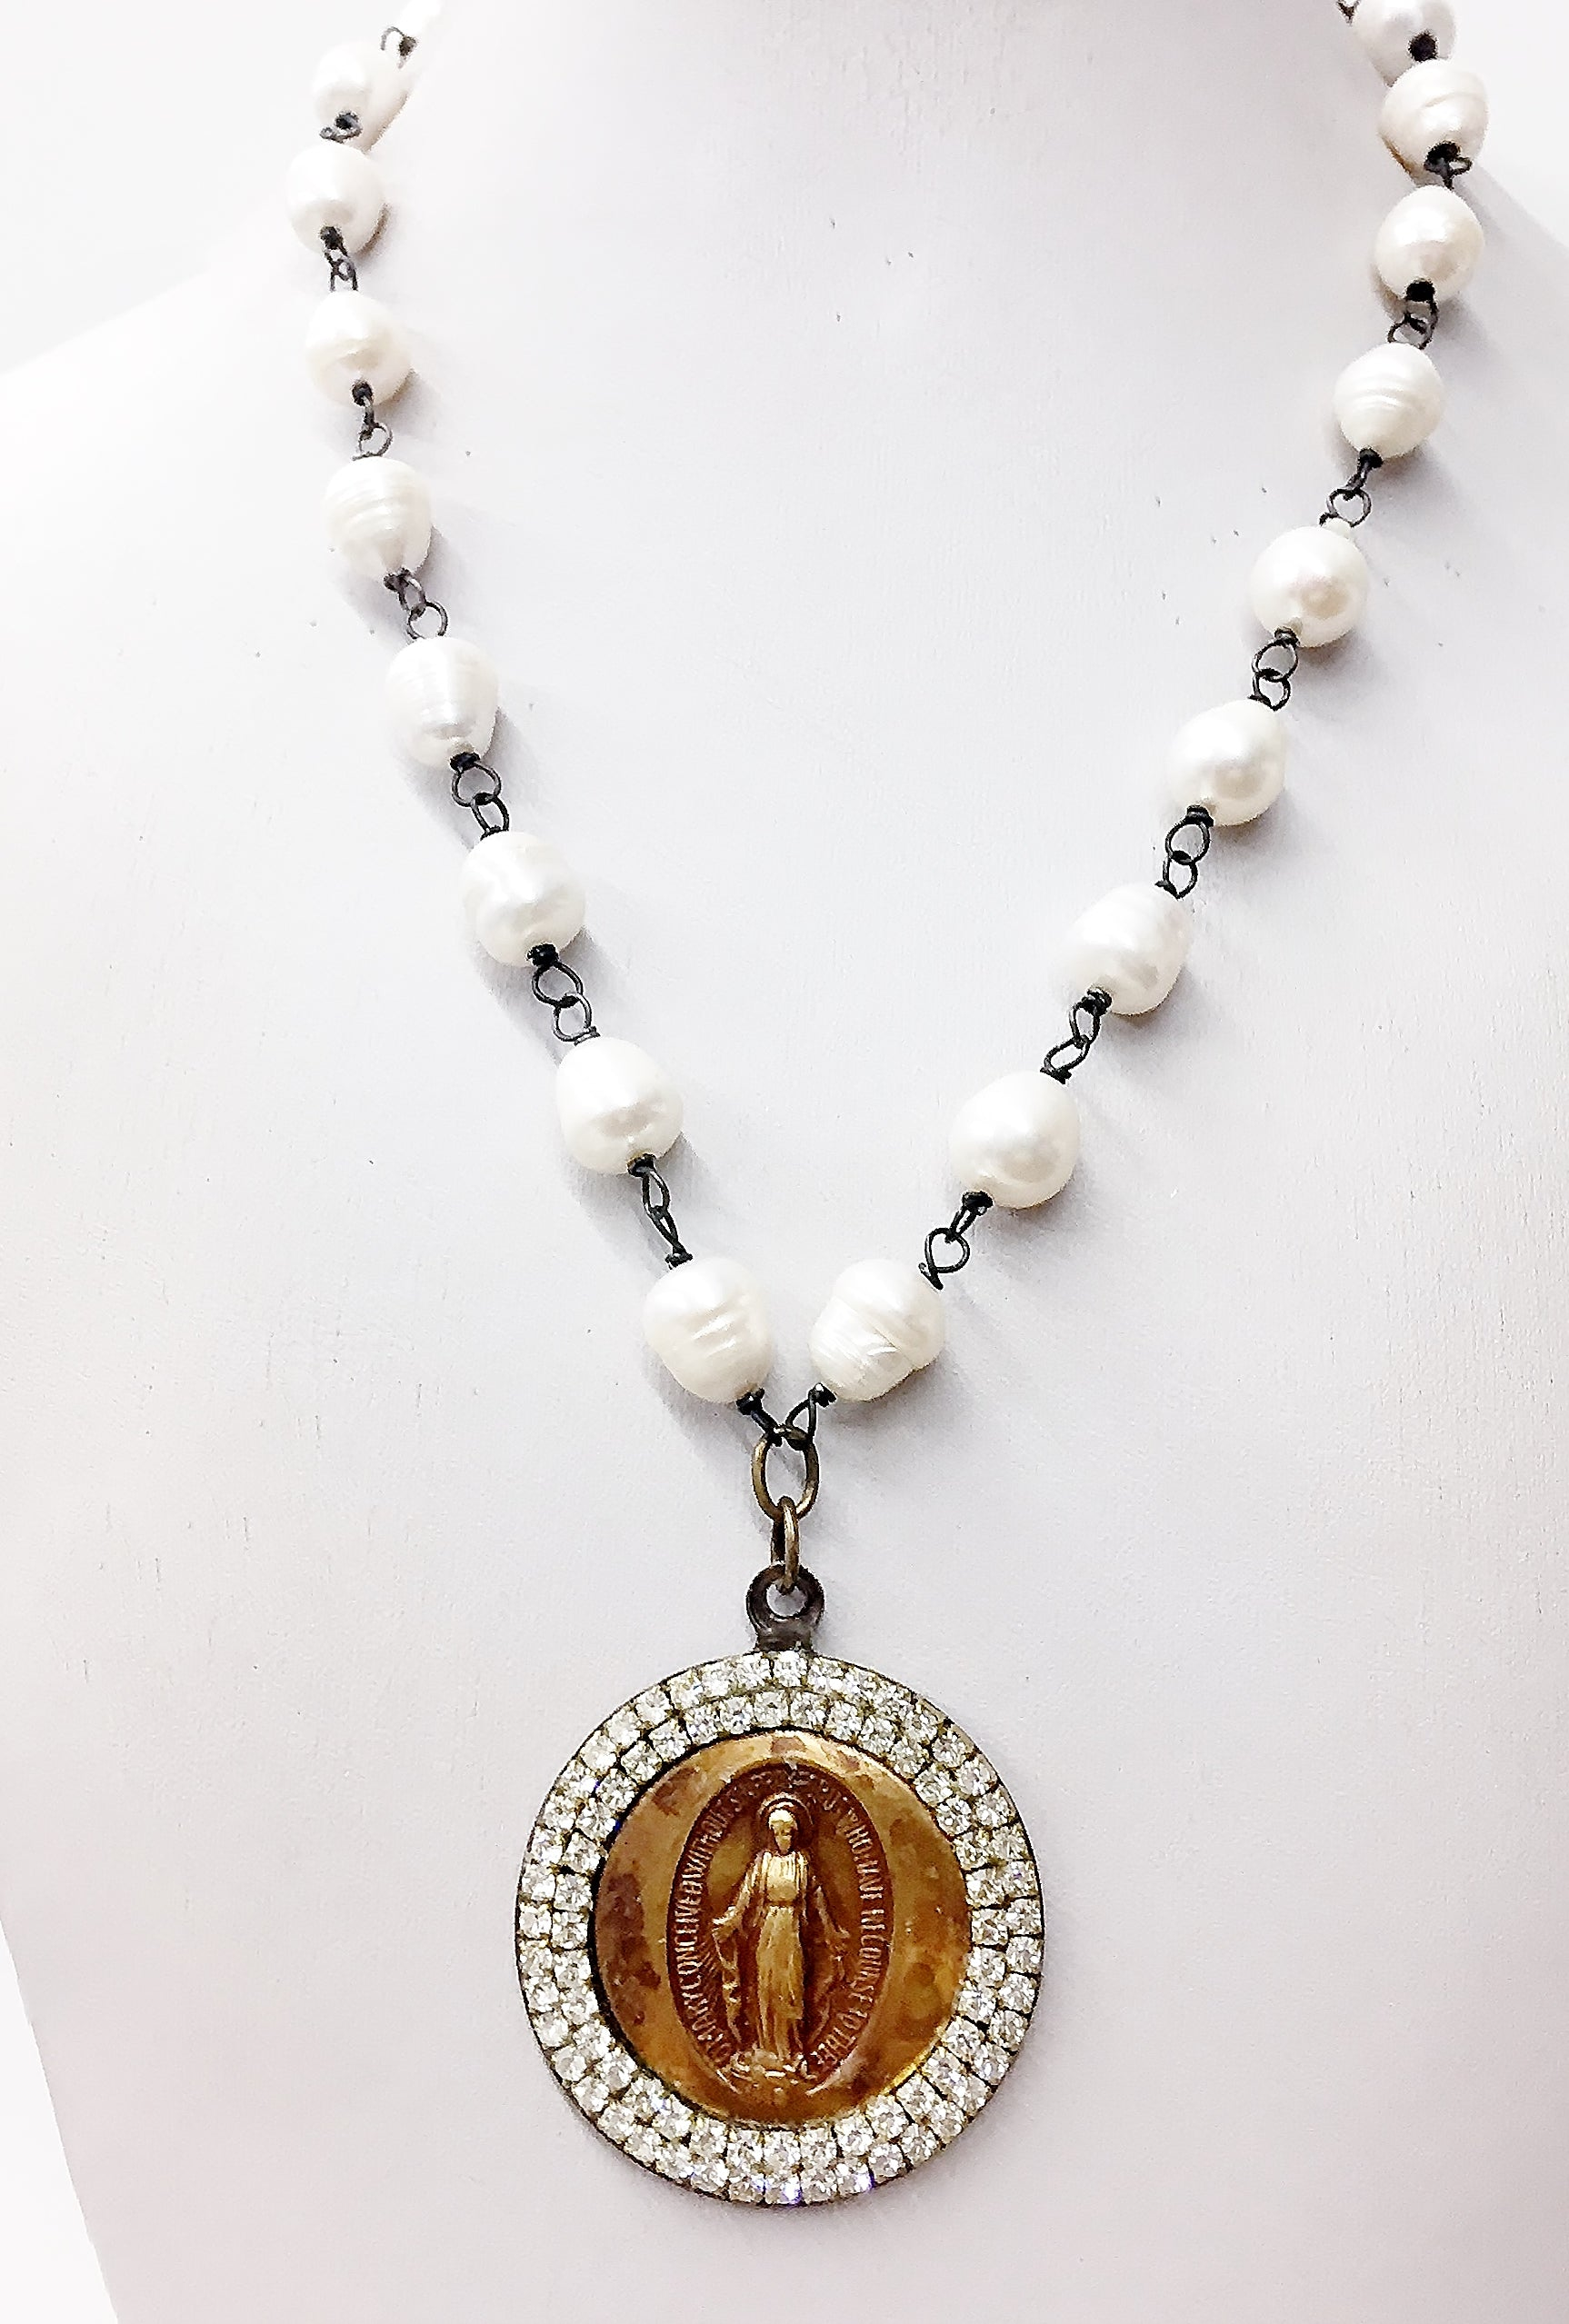 Jeweled Madonna Medallion Necklace